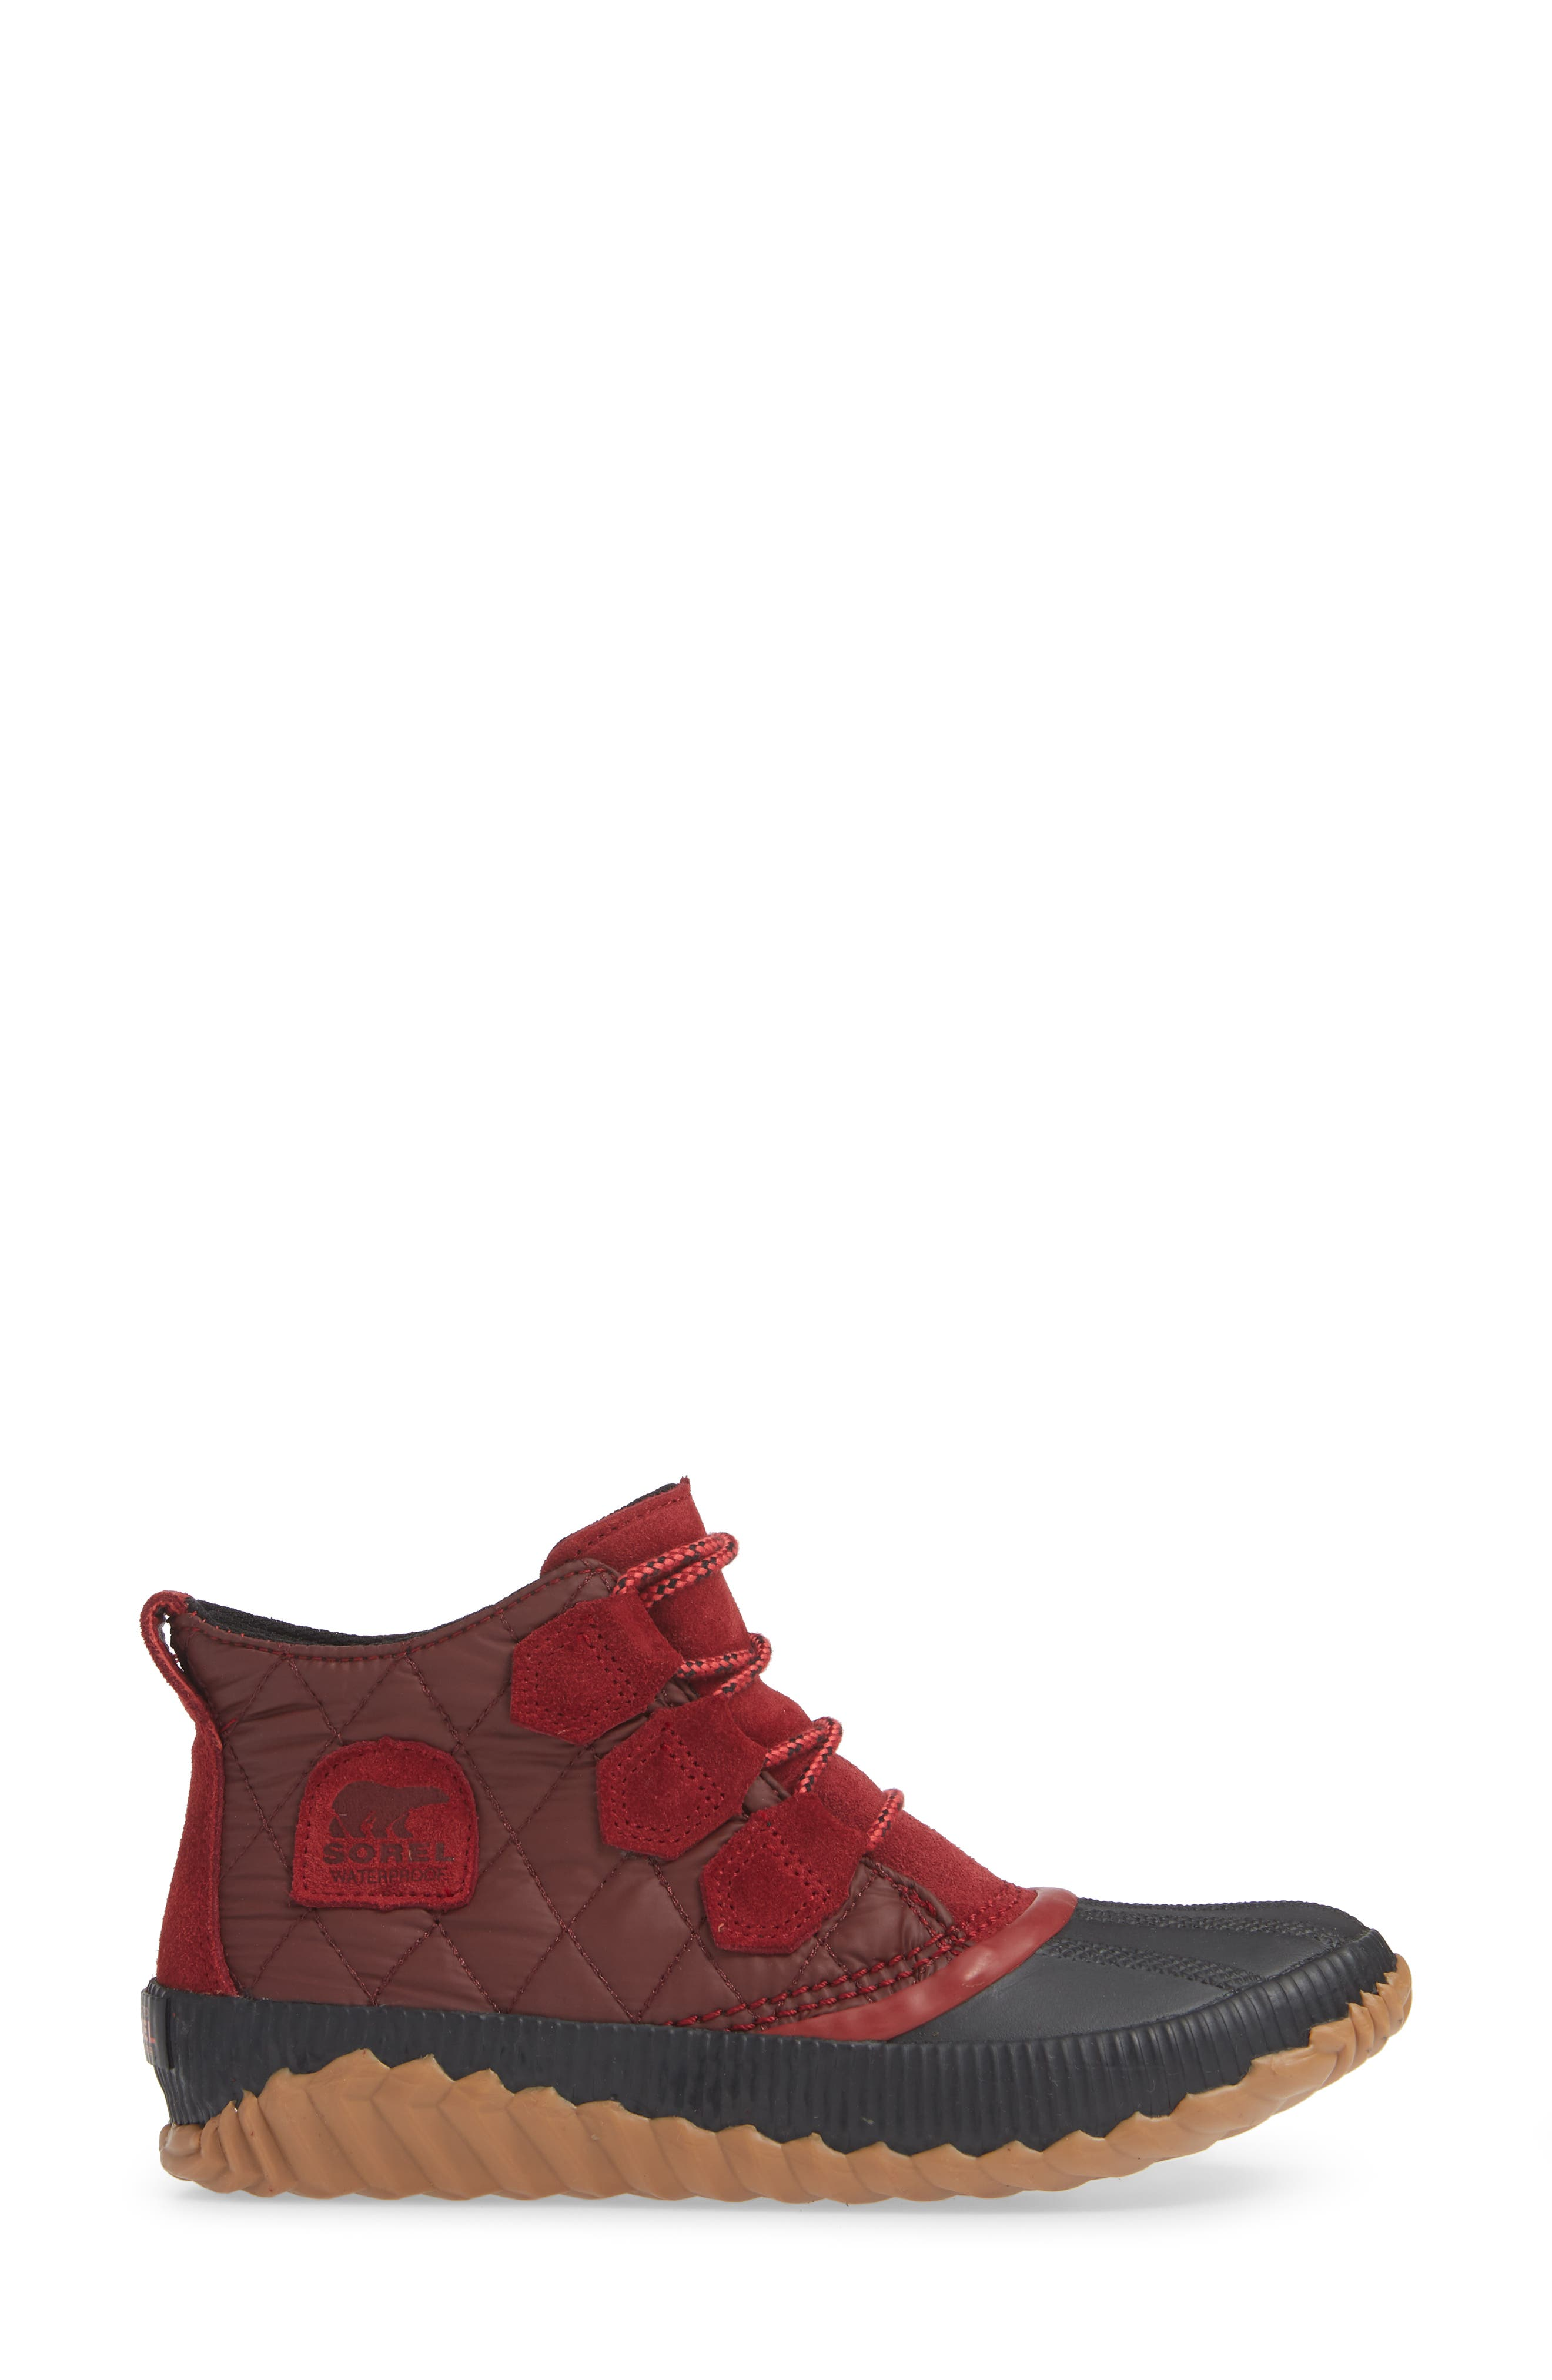 Out 'N' About Plus Camp Waterproof Bootie,                             Alternate thumbnail 3, color,                             CAMP/ RED ELEMENT